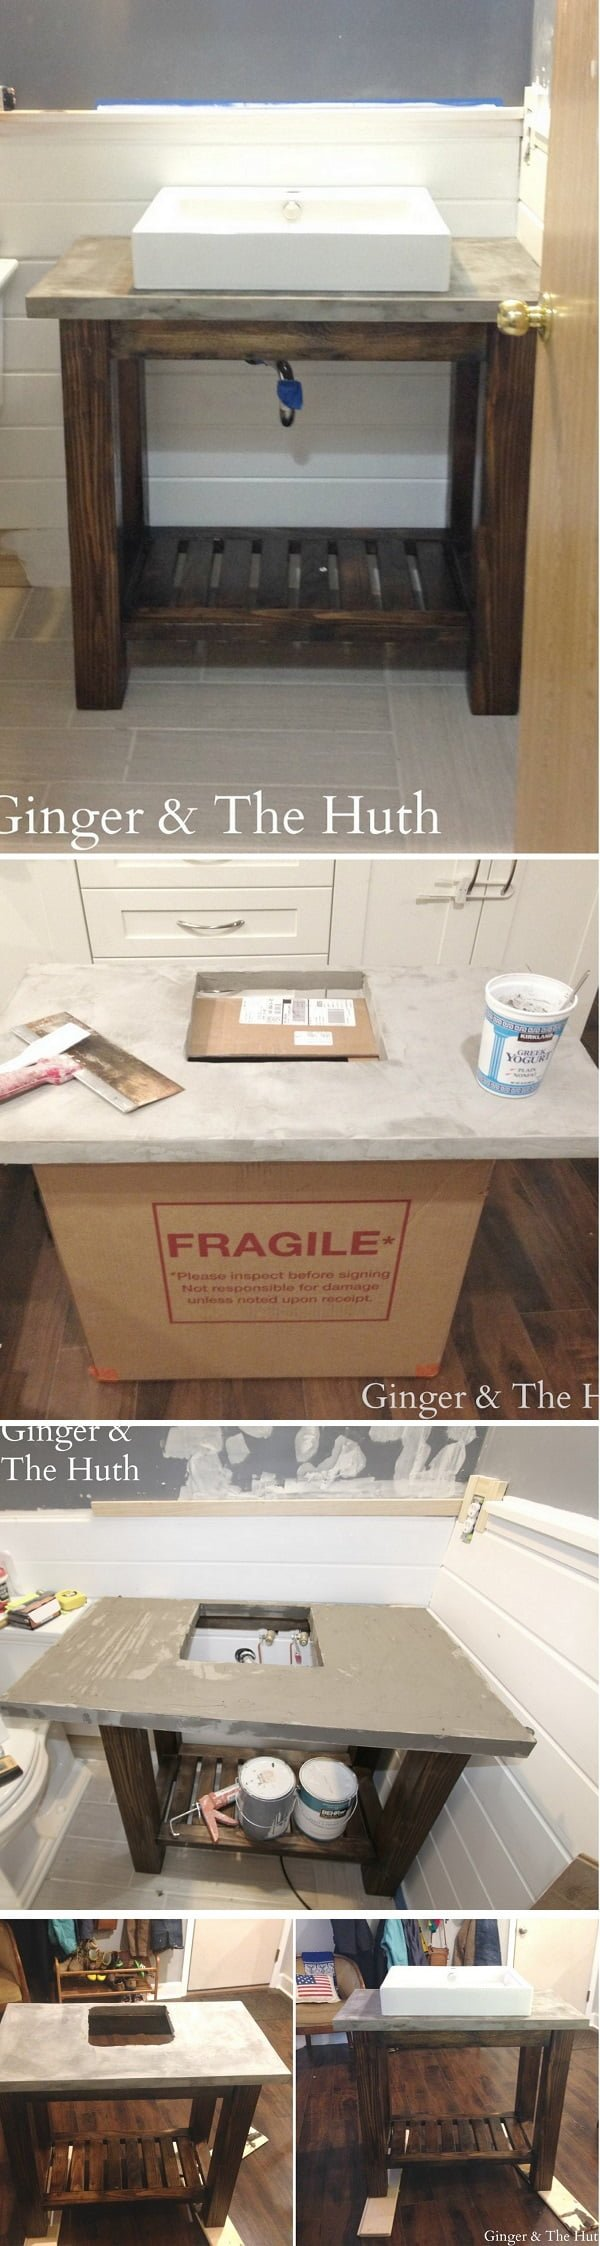 How to make a #DIY Pottery Barn inspired vanity